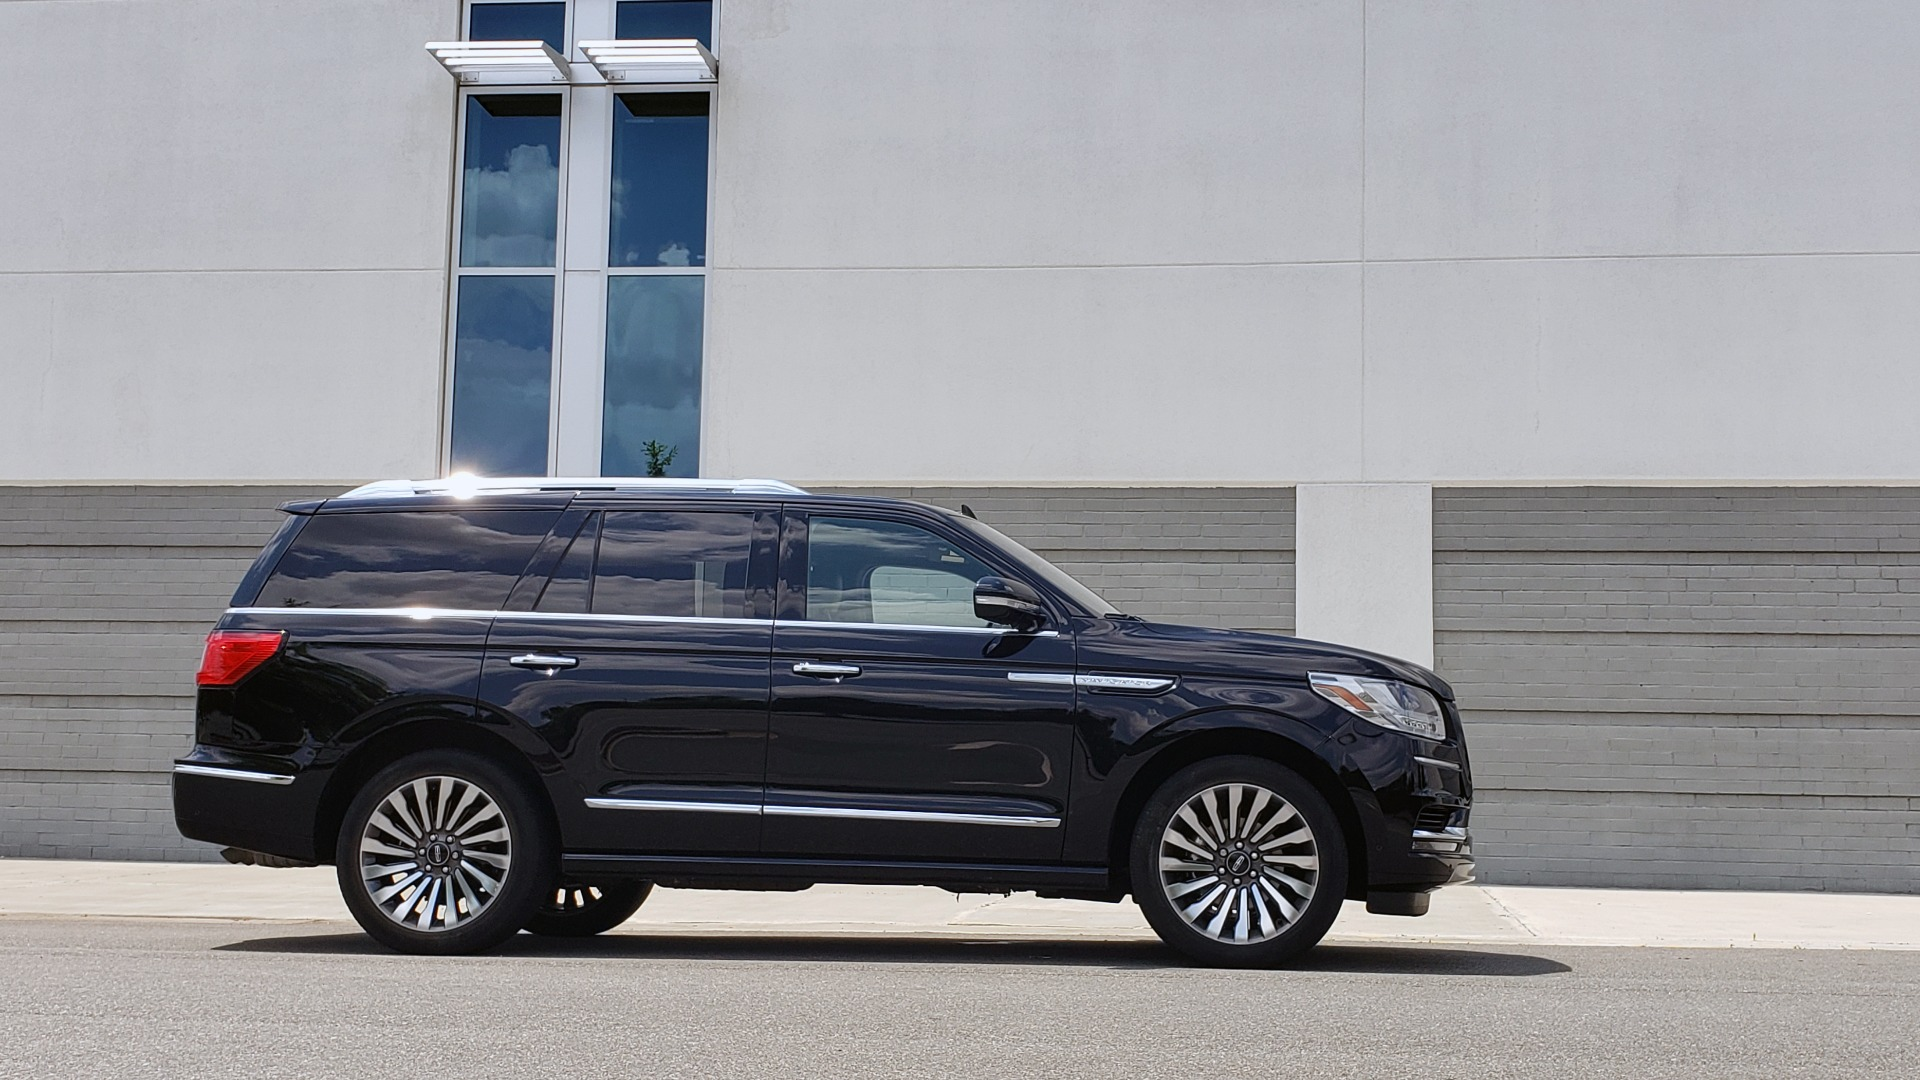 Used 2019 Lincoln NAVIGATOR RESERVE 4X4 / NAV / PANO-ROOF / REVEL ULTIMA AUDIO / 3-ROW / REARVIEW for sale $74,795 at Formula Imports in Charlotte NC 28227 9